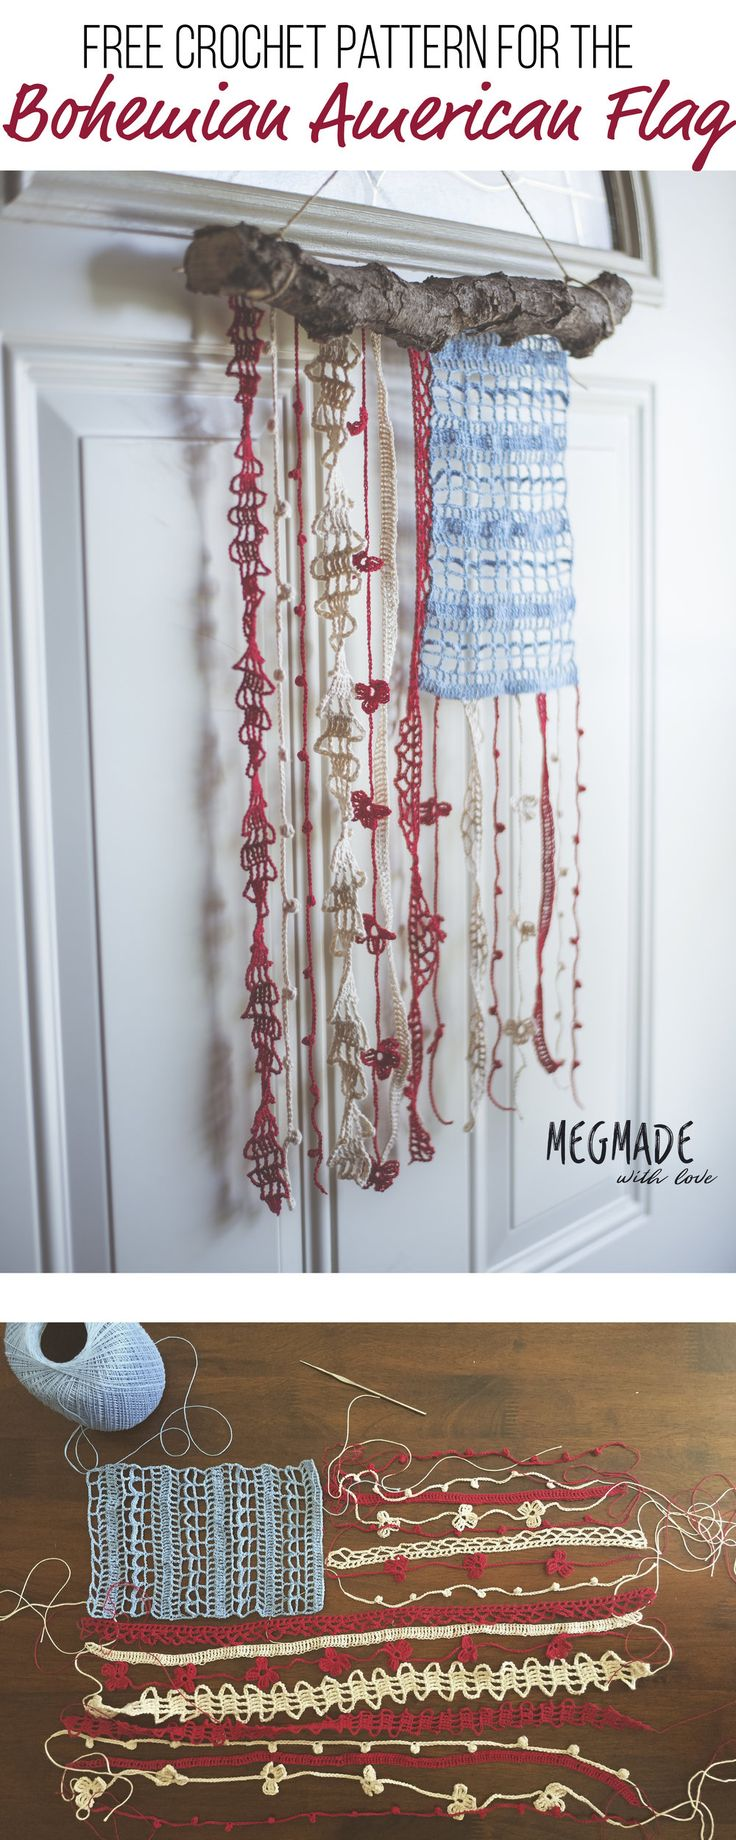 FREE Crochet Pattern for the Bohemian American Flag - Megmade with Love